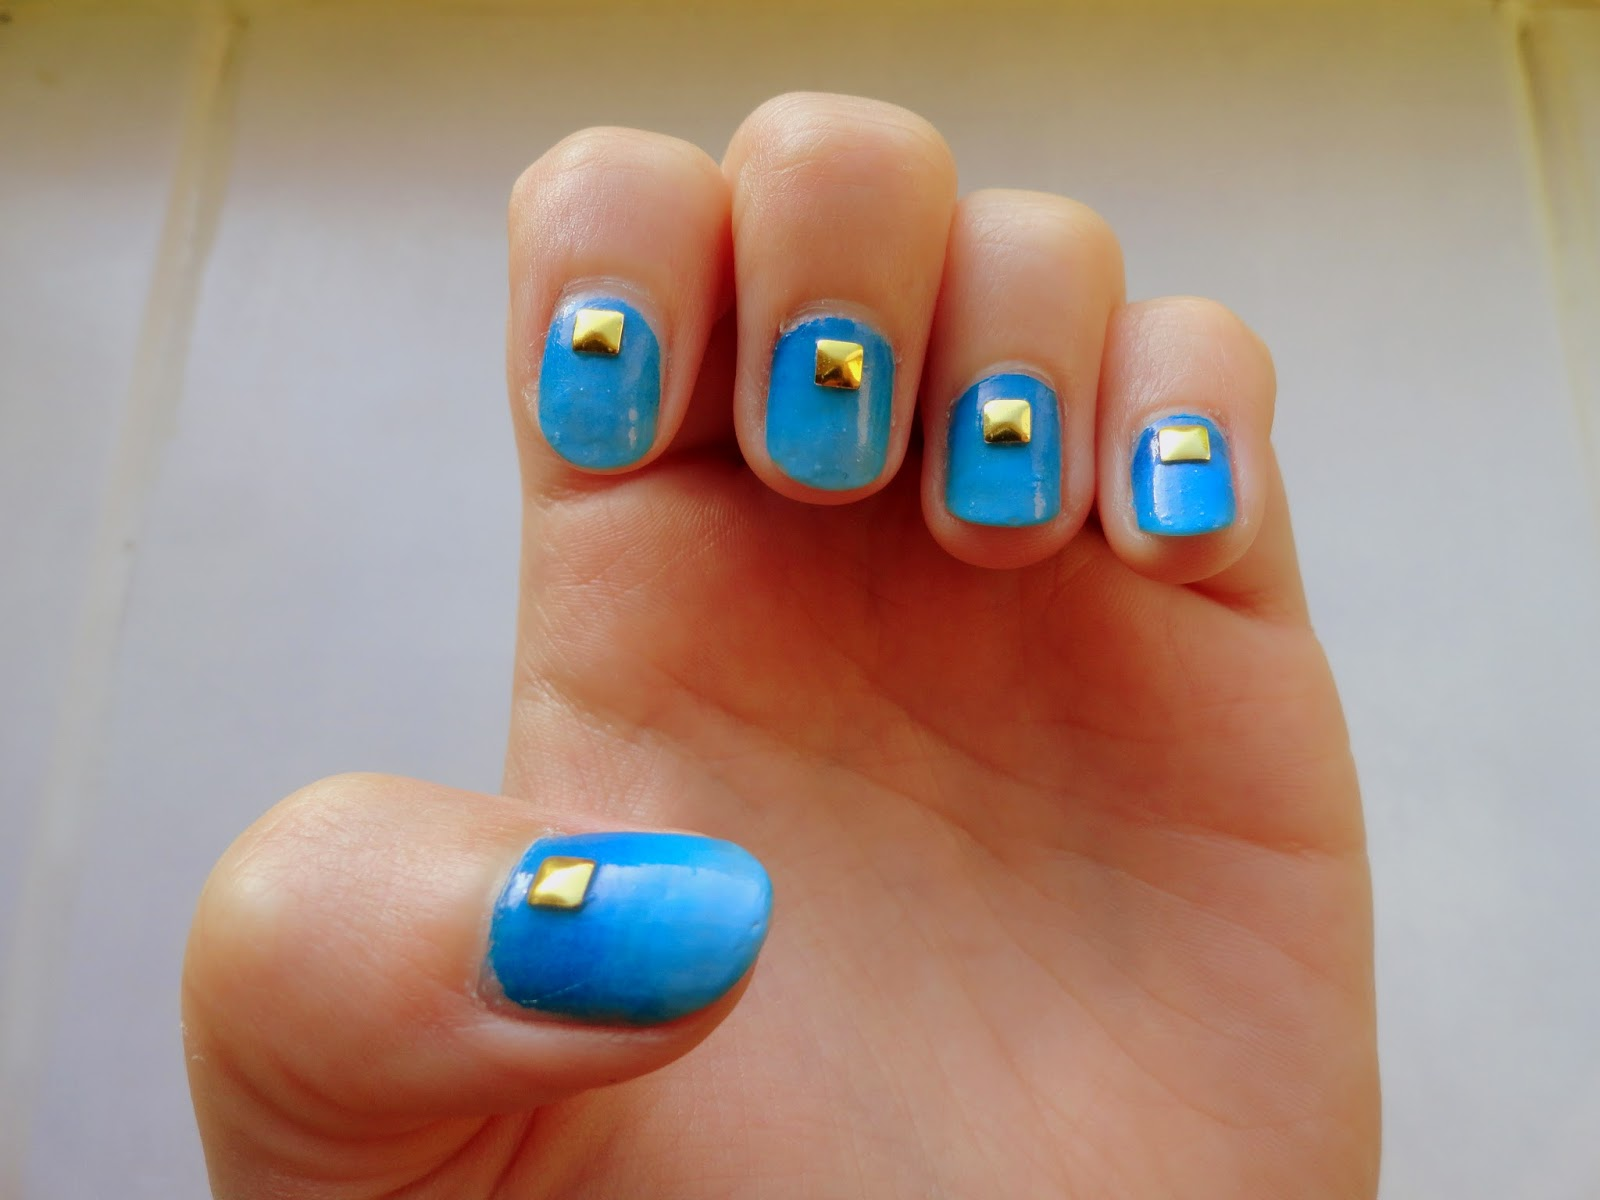 Clothes & Dreams: NOTD: gradient and studs: full nail art with blue Kiko gradient and golden stud